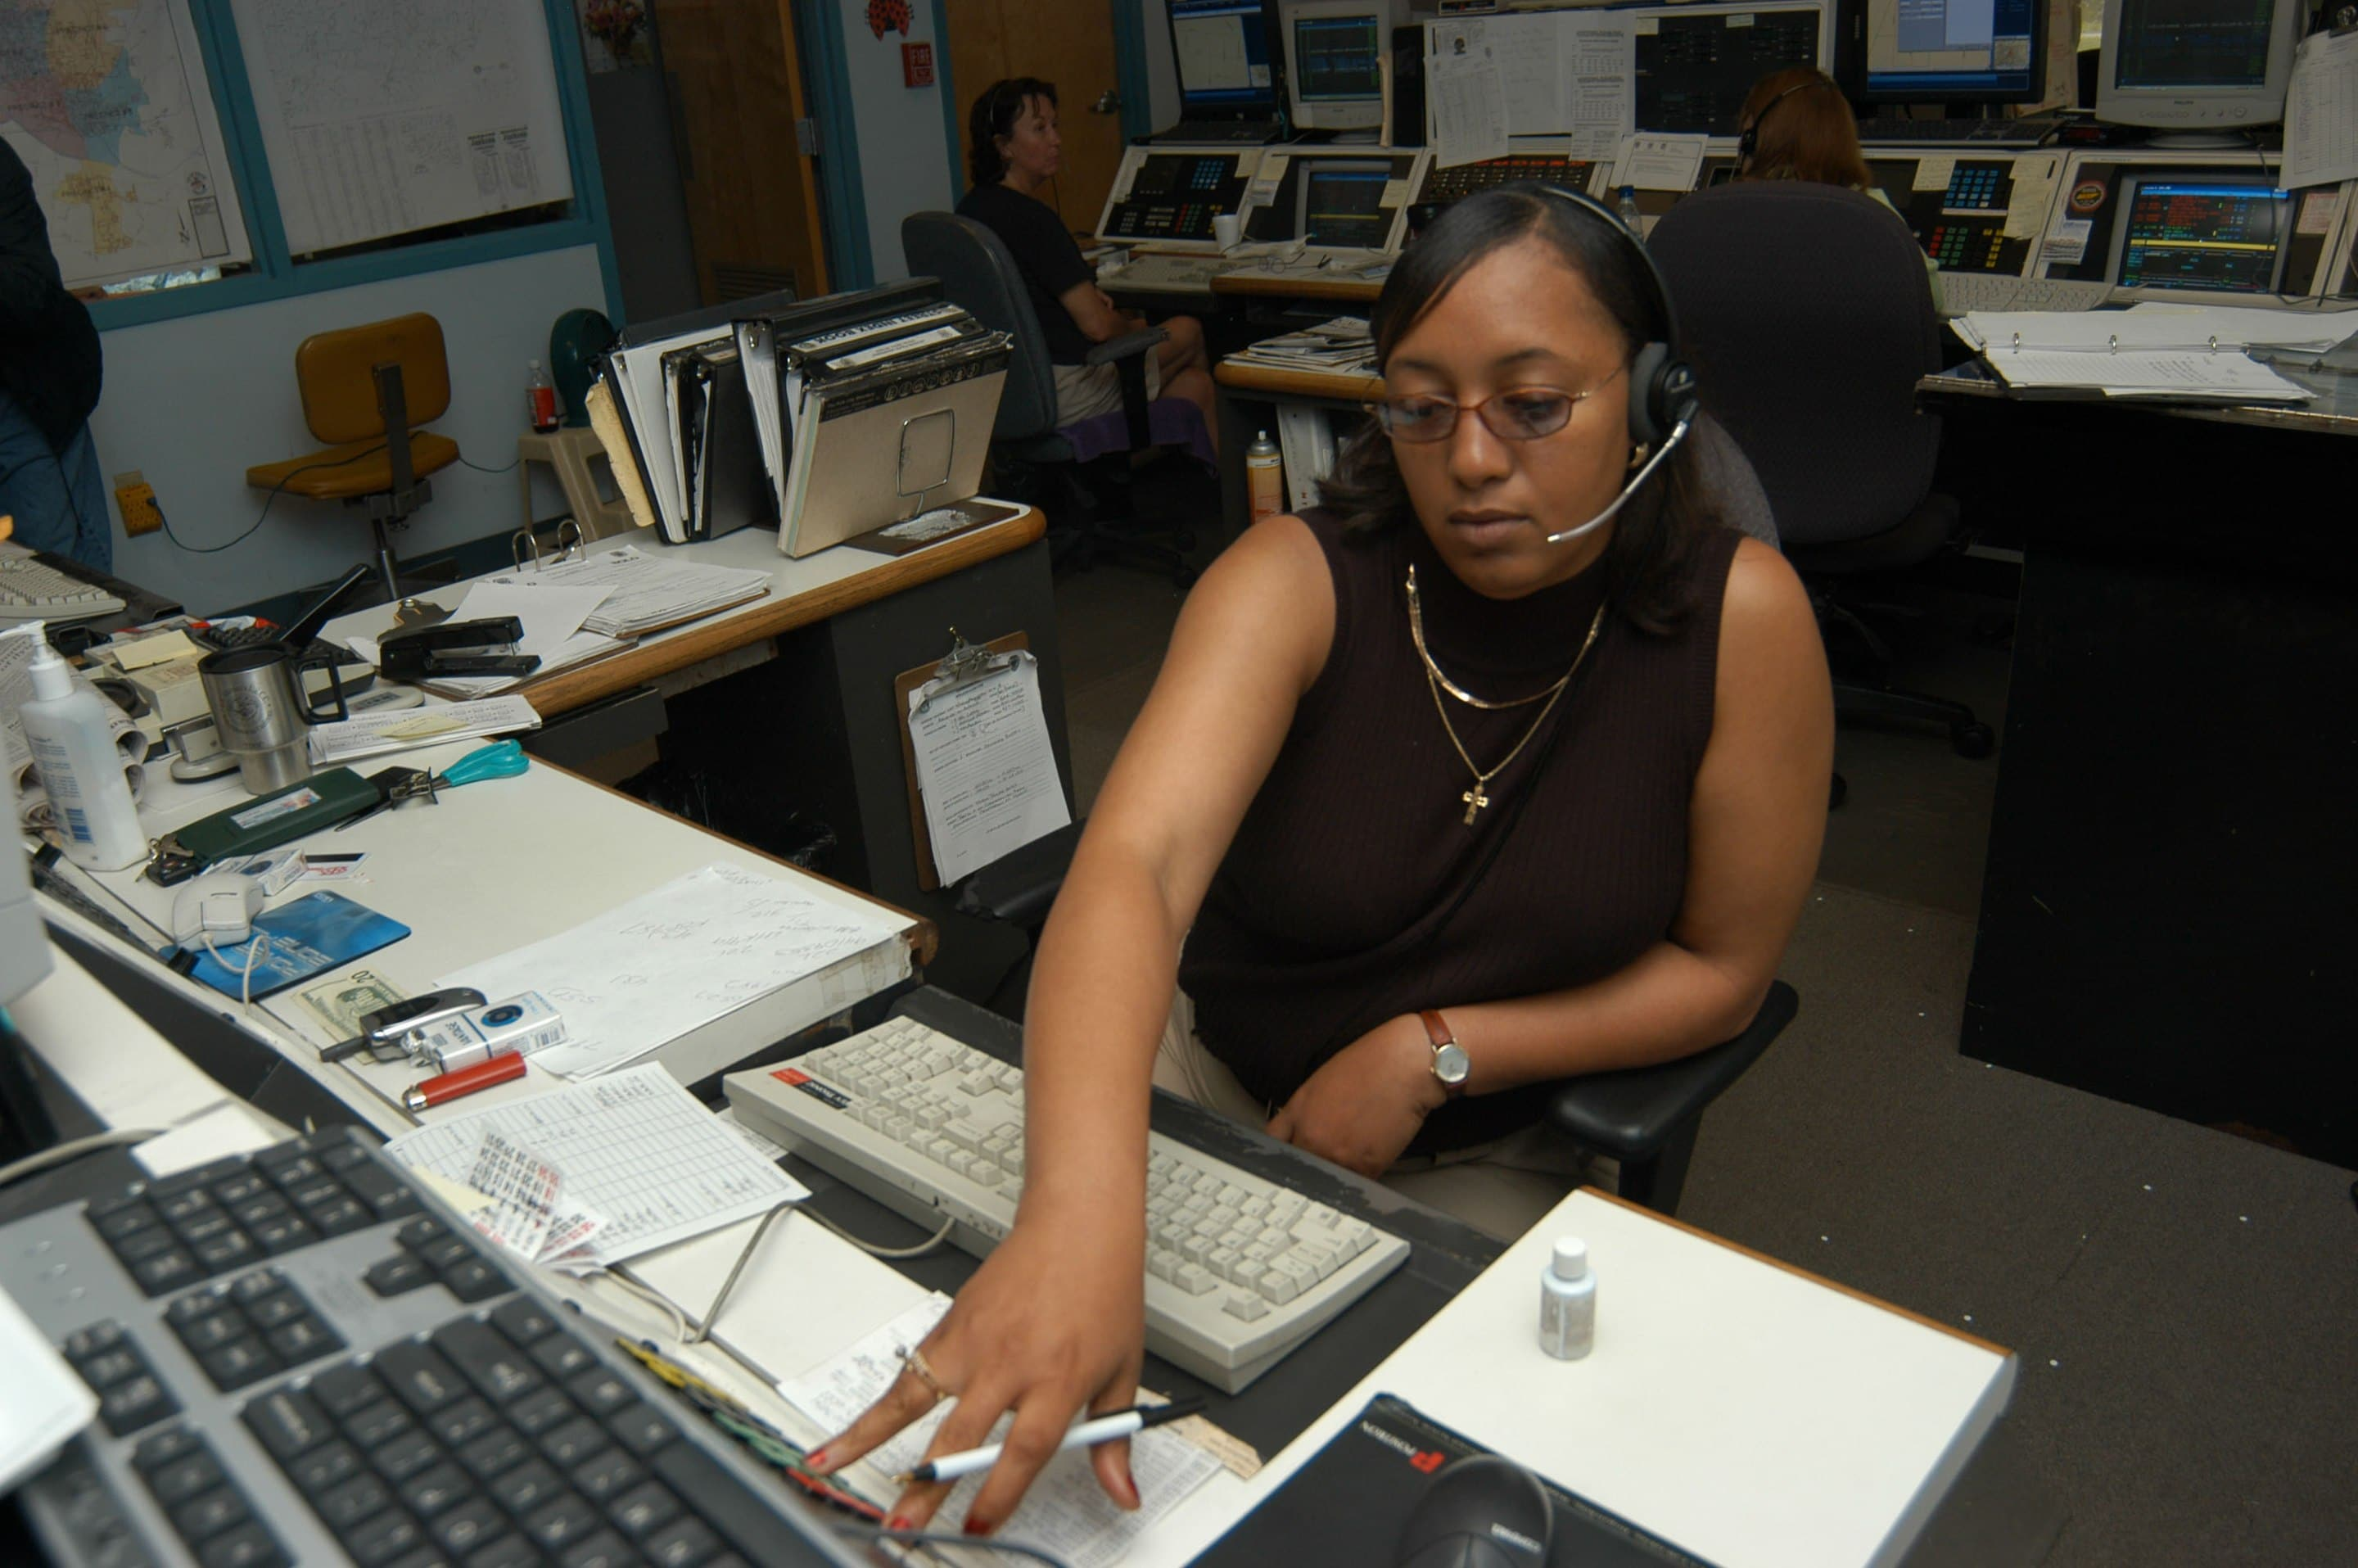 Female dispatcher on a call